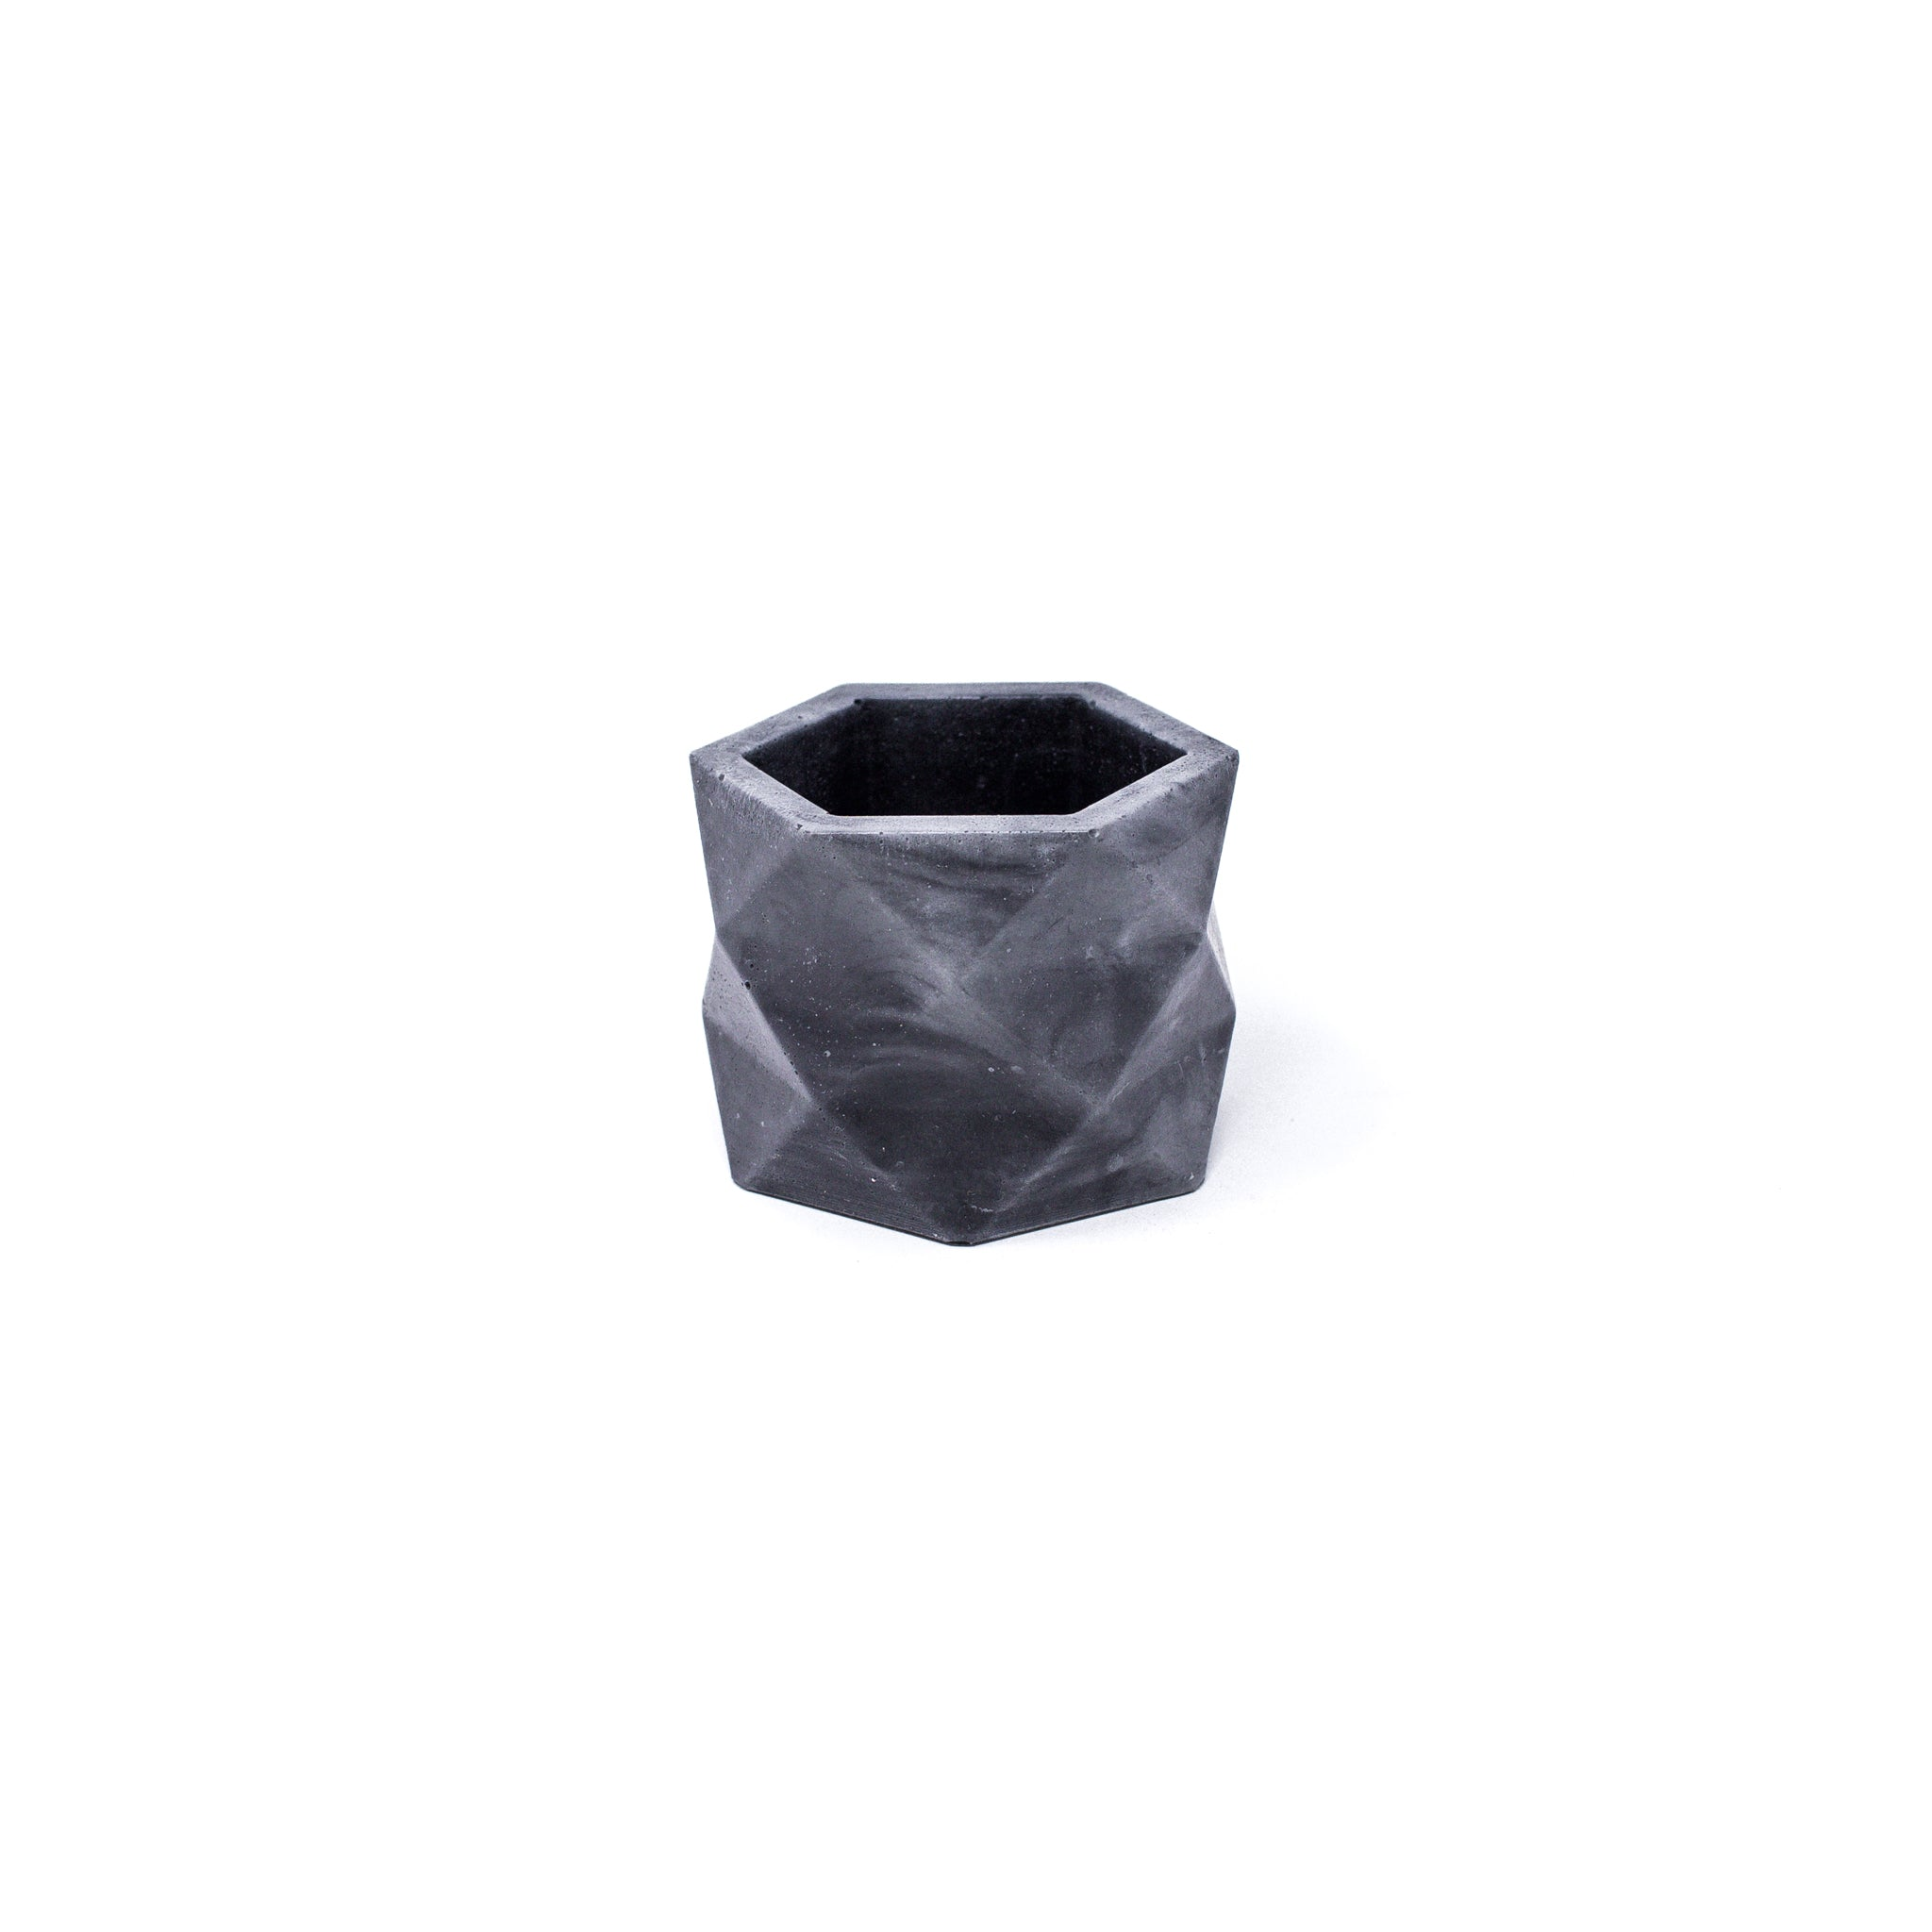 Concrete Geometric Planter: Medium (Black Marbled)